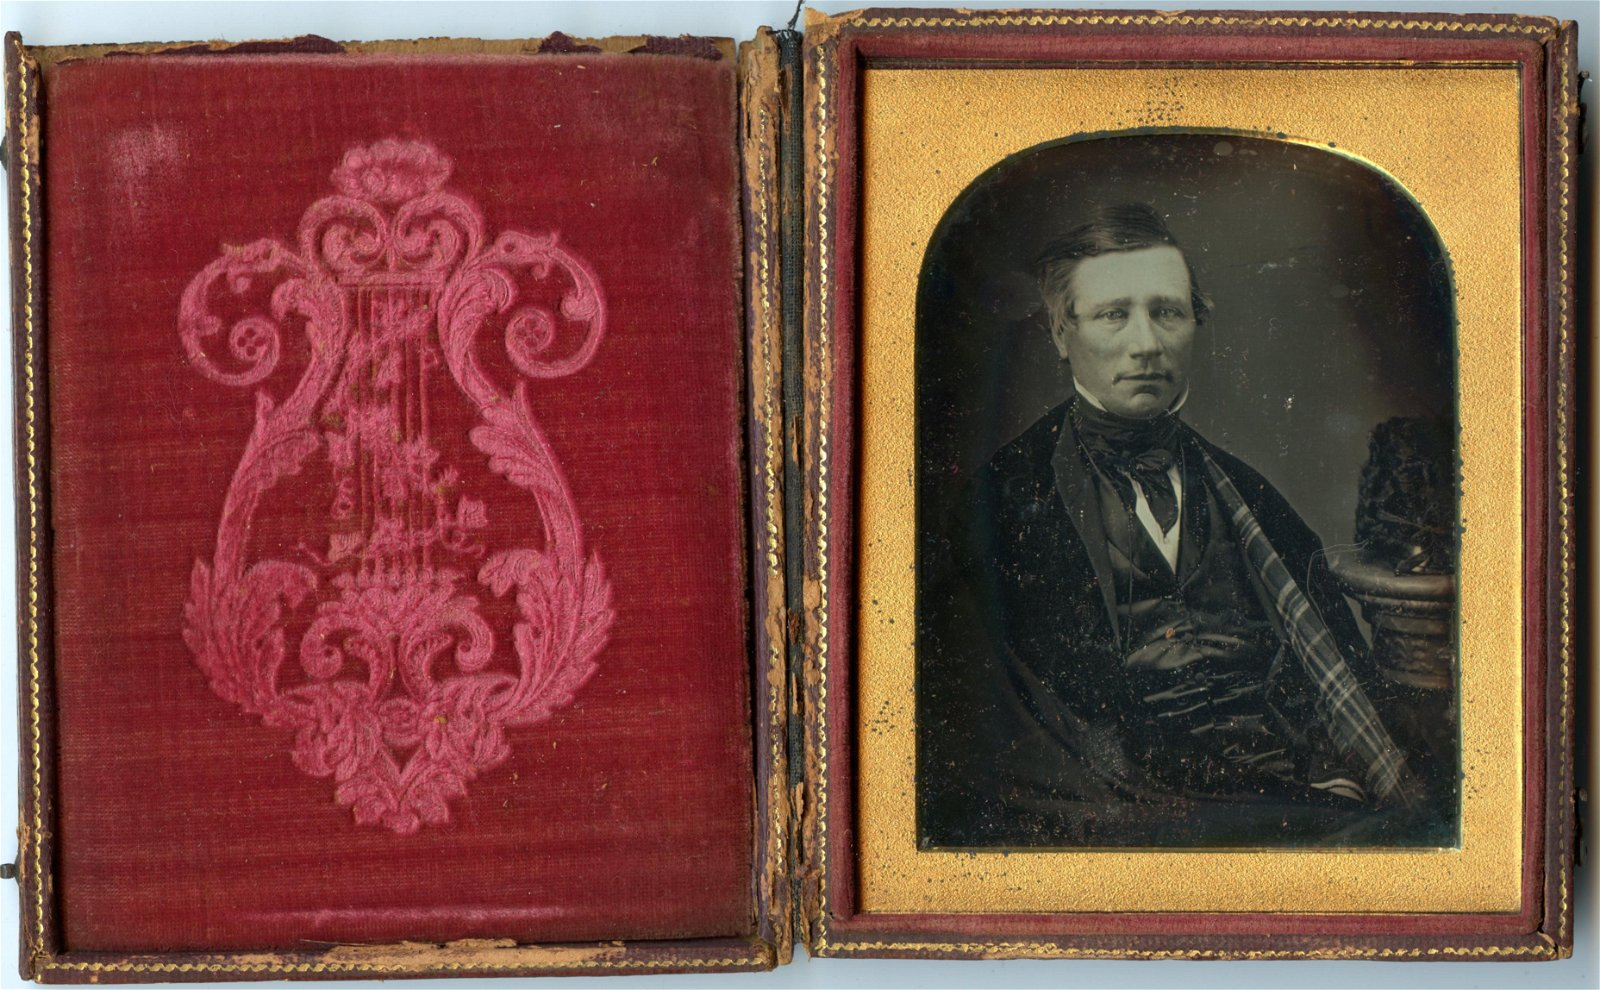 1/4 Plate Daguerreotype of Seated Man